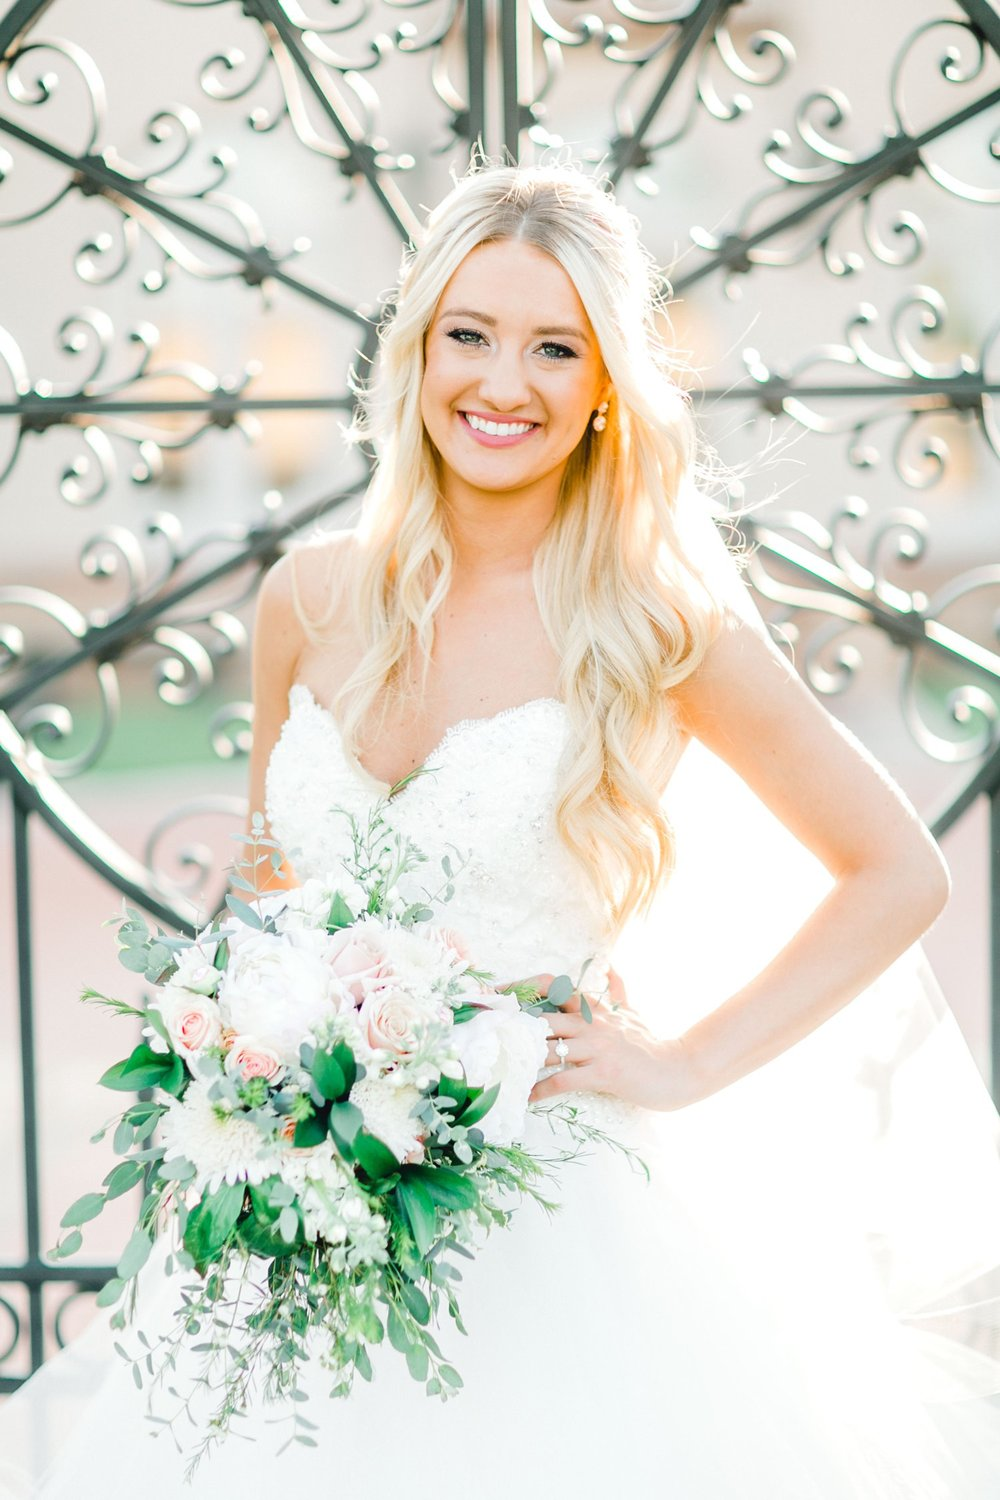 MADI_WRIGHT_BRIDALS_ALLEEJ_LUBBOCK_PHOTOGRAPHER0018.jpg